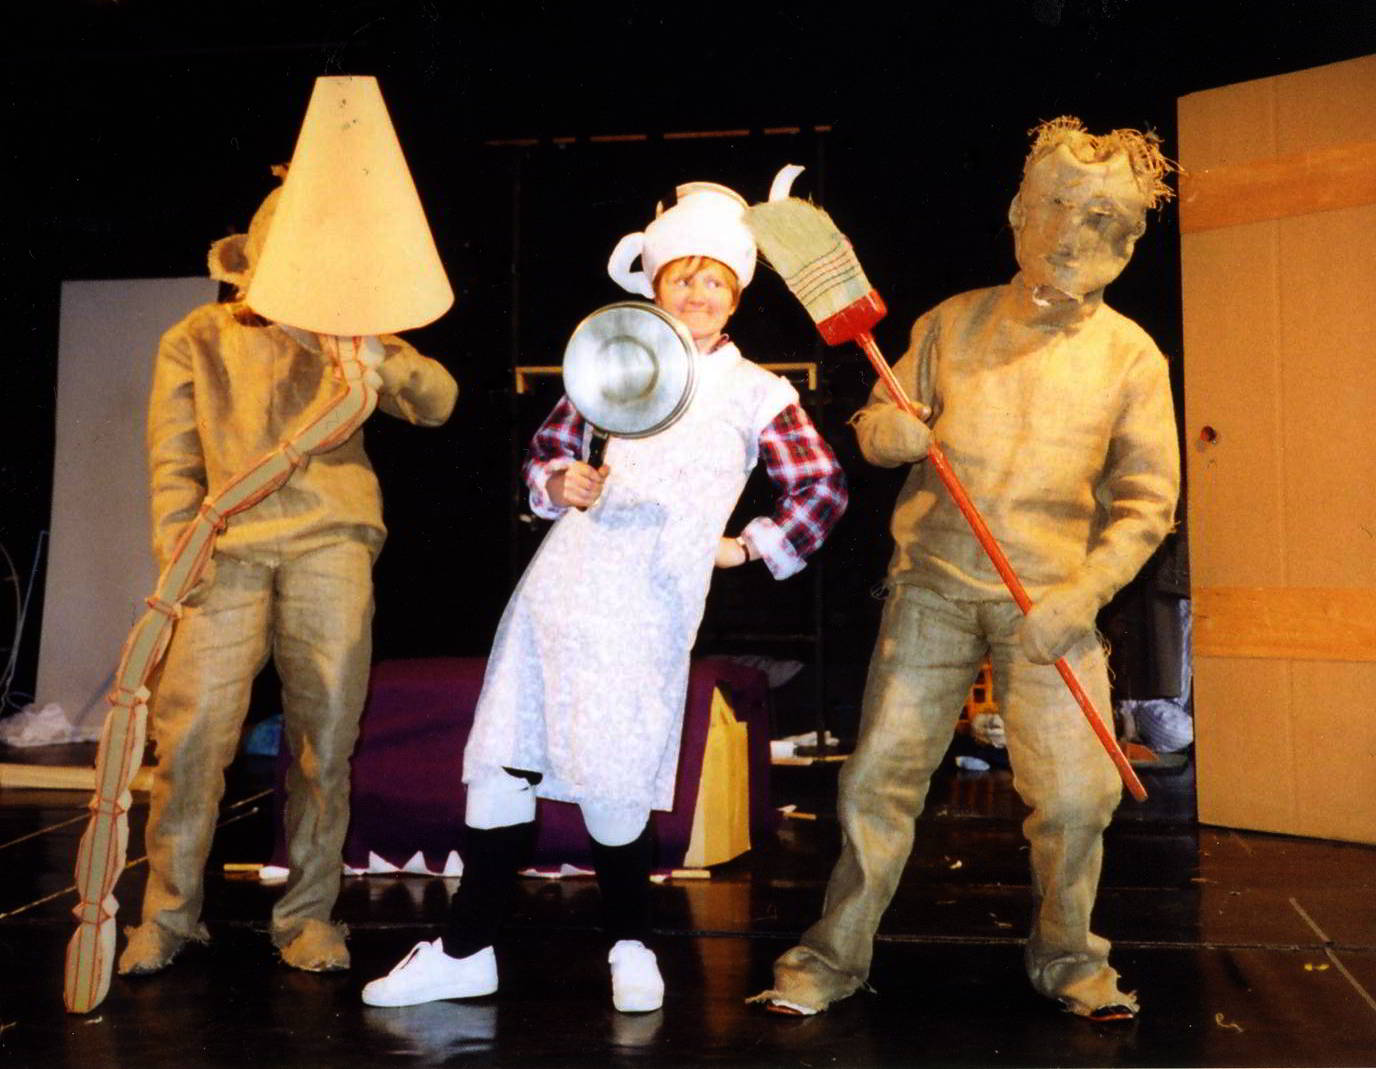 Handspan Theatre Daze of Our Lives hessian bag figures holding a lampshade (L) and a broom (R) in dance rehearsal with woman dressed in white holding a saucepan